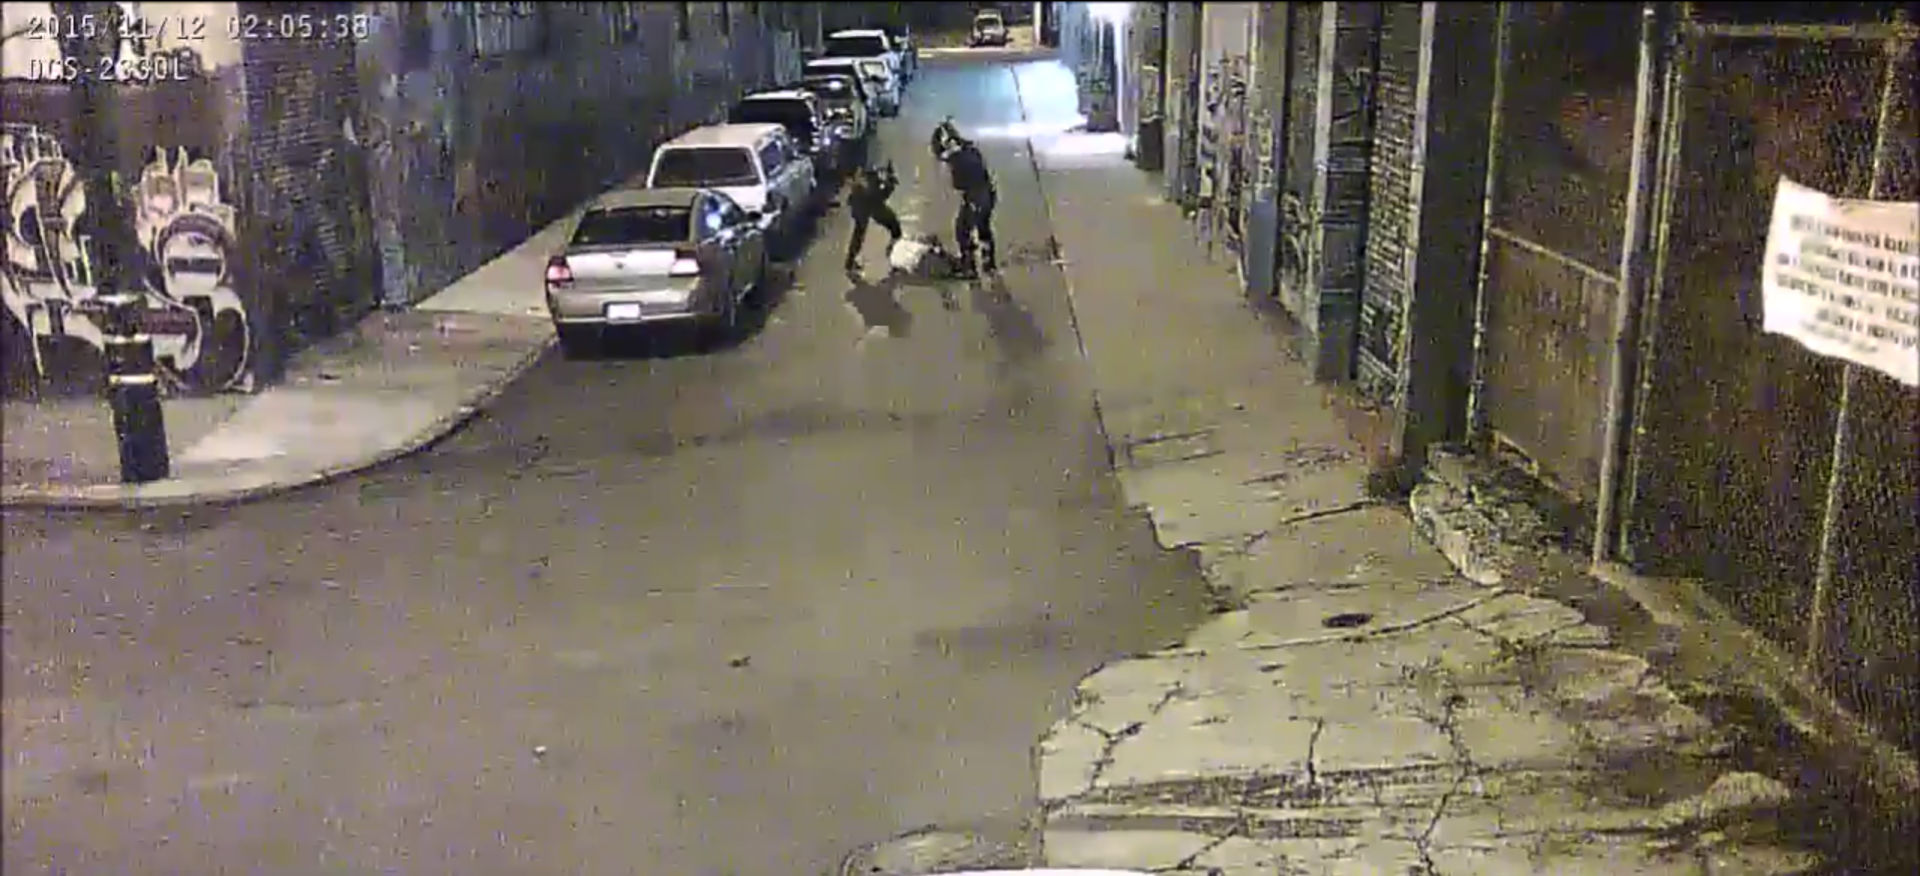 A screenshot from video footage released by San Francisco Public Defender's office.